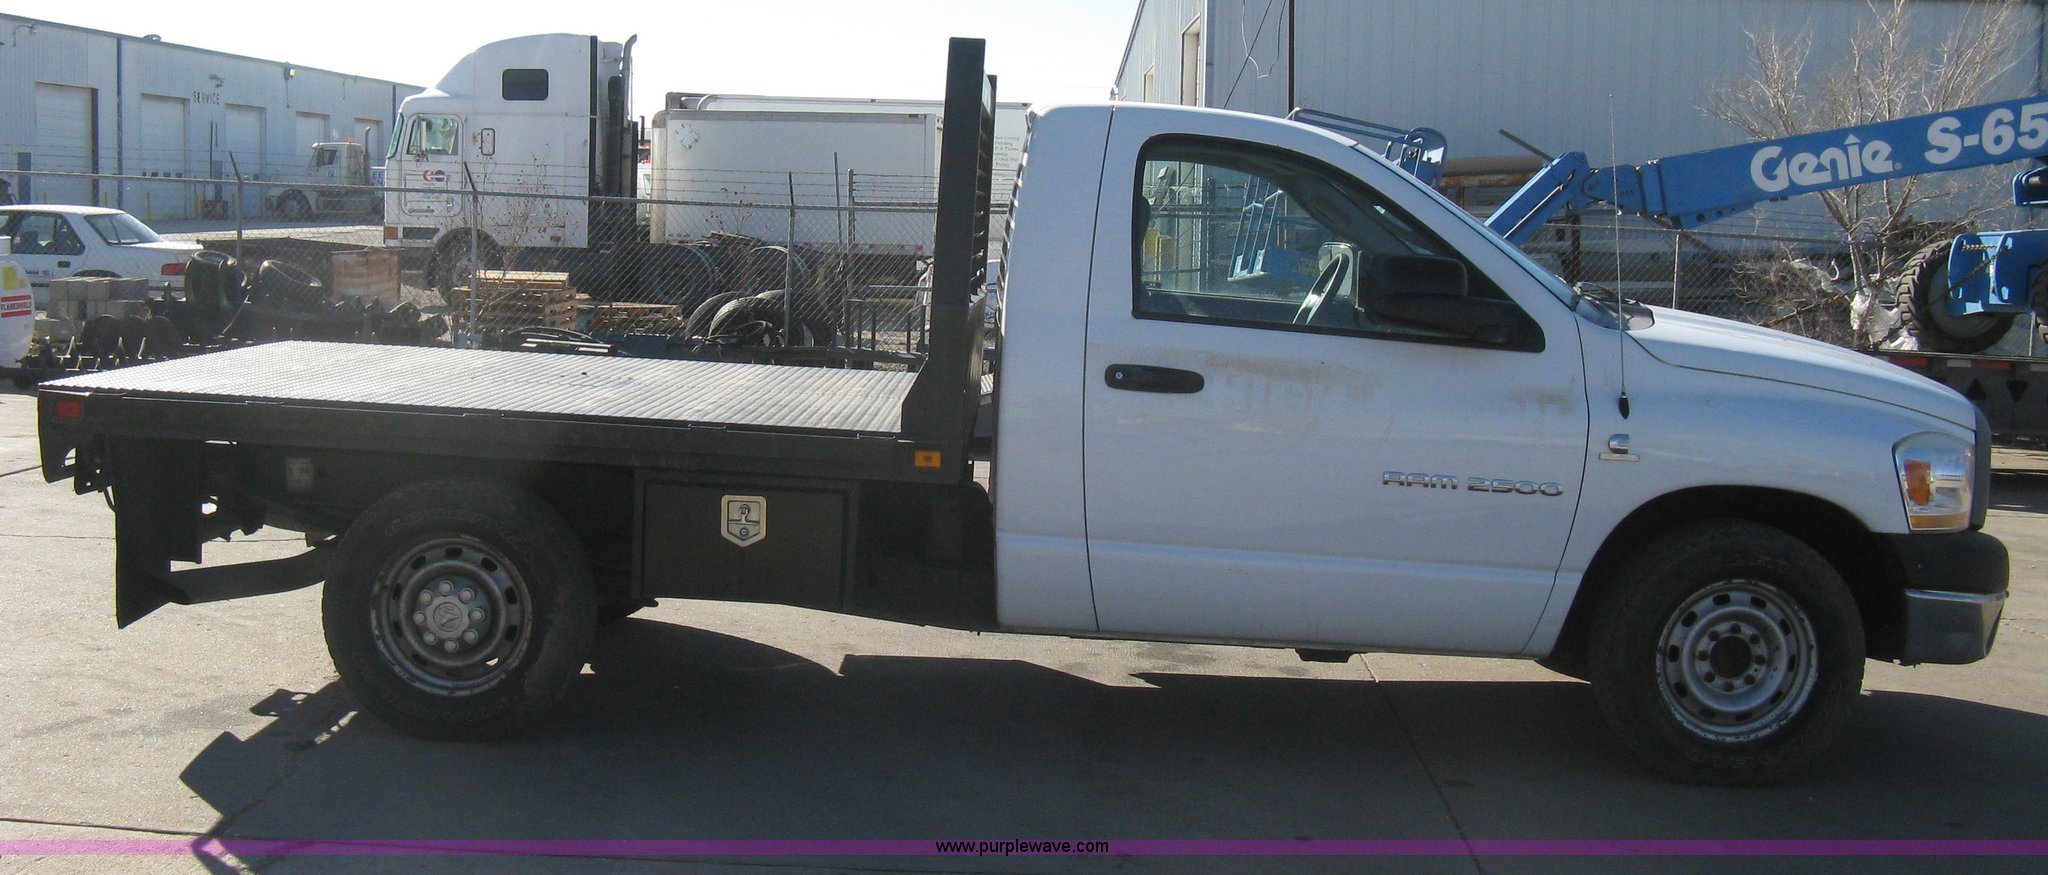 2006 Dodge Ram 2500 Flatbed Truck Item I5644 Sold March Full Size In New Window